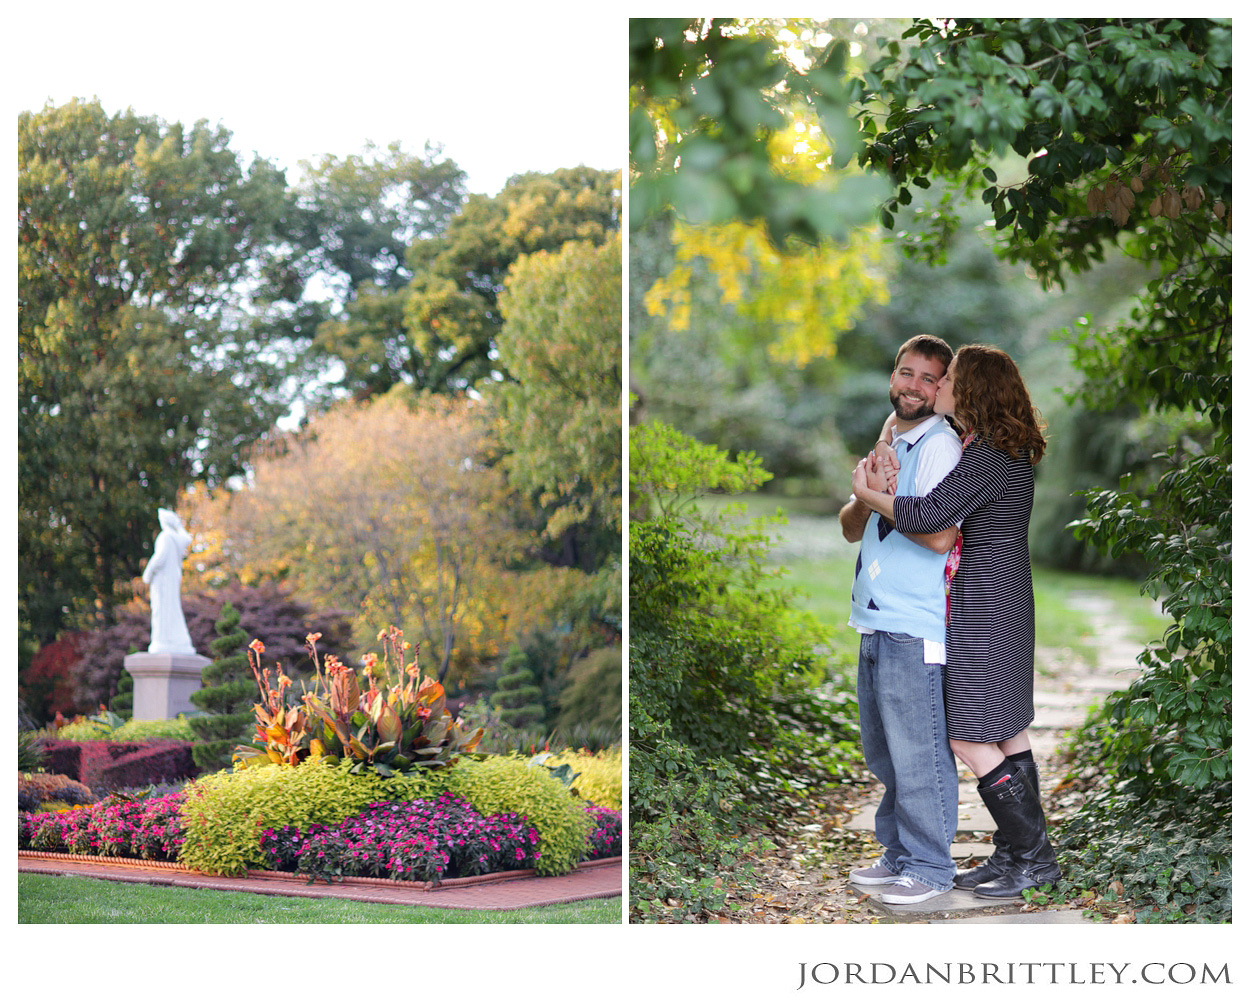 Missouri Engagement, Botanical Gardens Proposal, Engagement, Engagement Photographer, Wedding Photographer, St Louis Wedding Photographer, International Wedding Photographer, Missouri Wedding Photographer, Garden Engagement, Botanical Gardens, Jordan Brittley